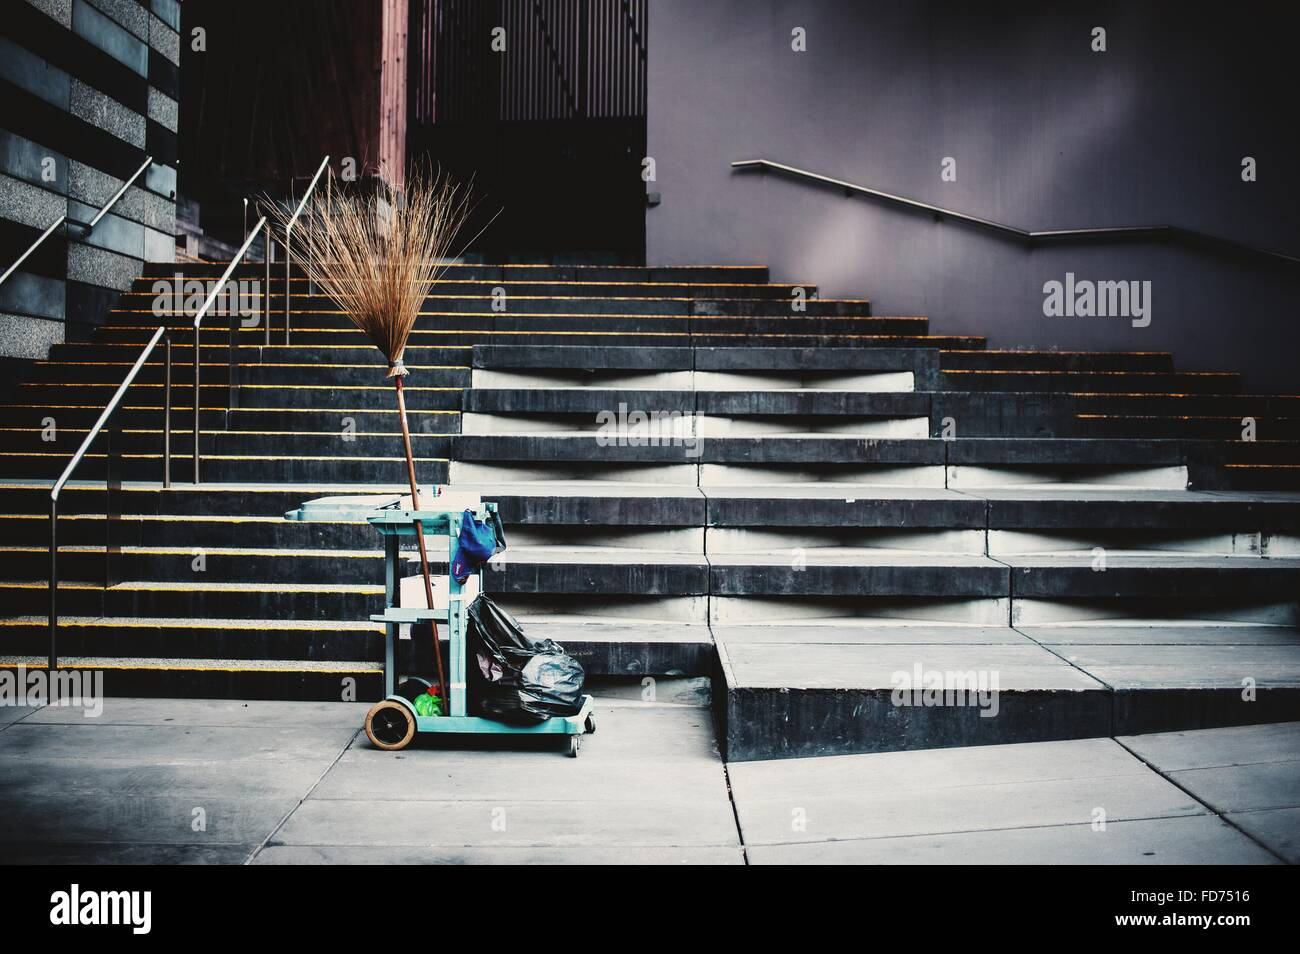 Cleaning Cart On Sidewalk - Stock Image